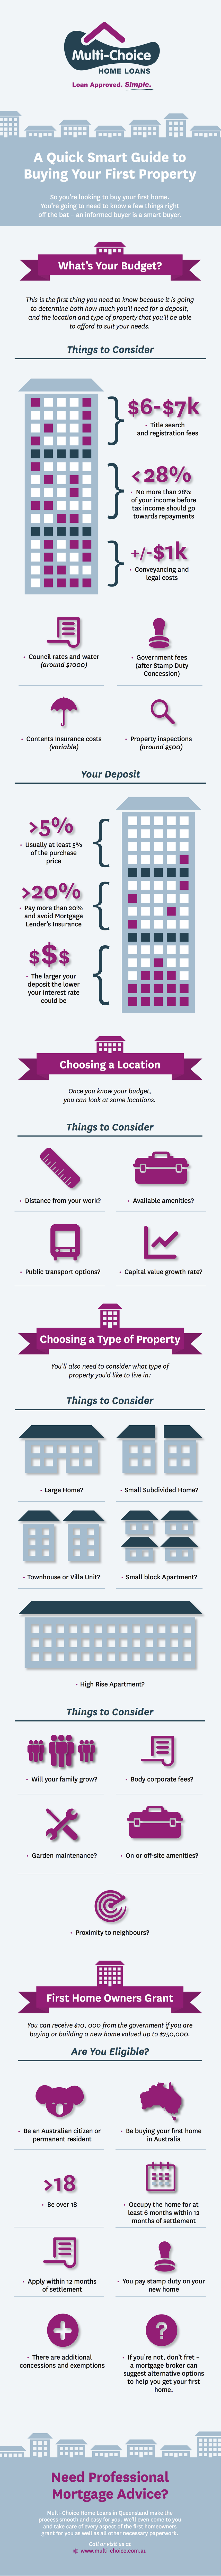 MCHL_a_quick_smart_guide_to_buying_your_first_property